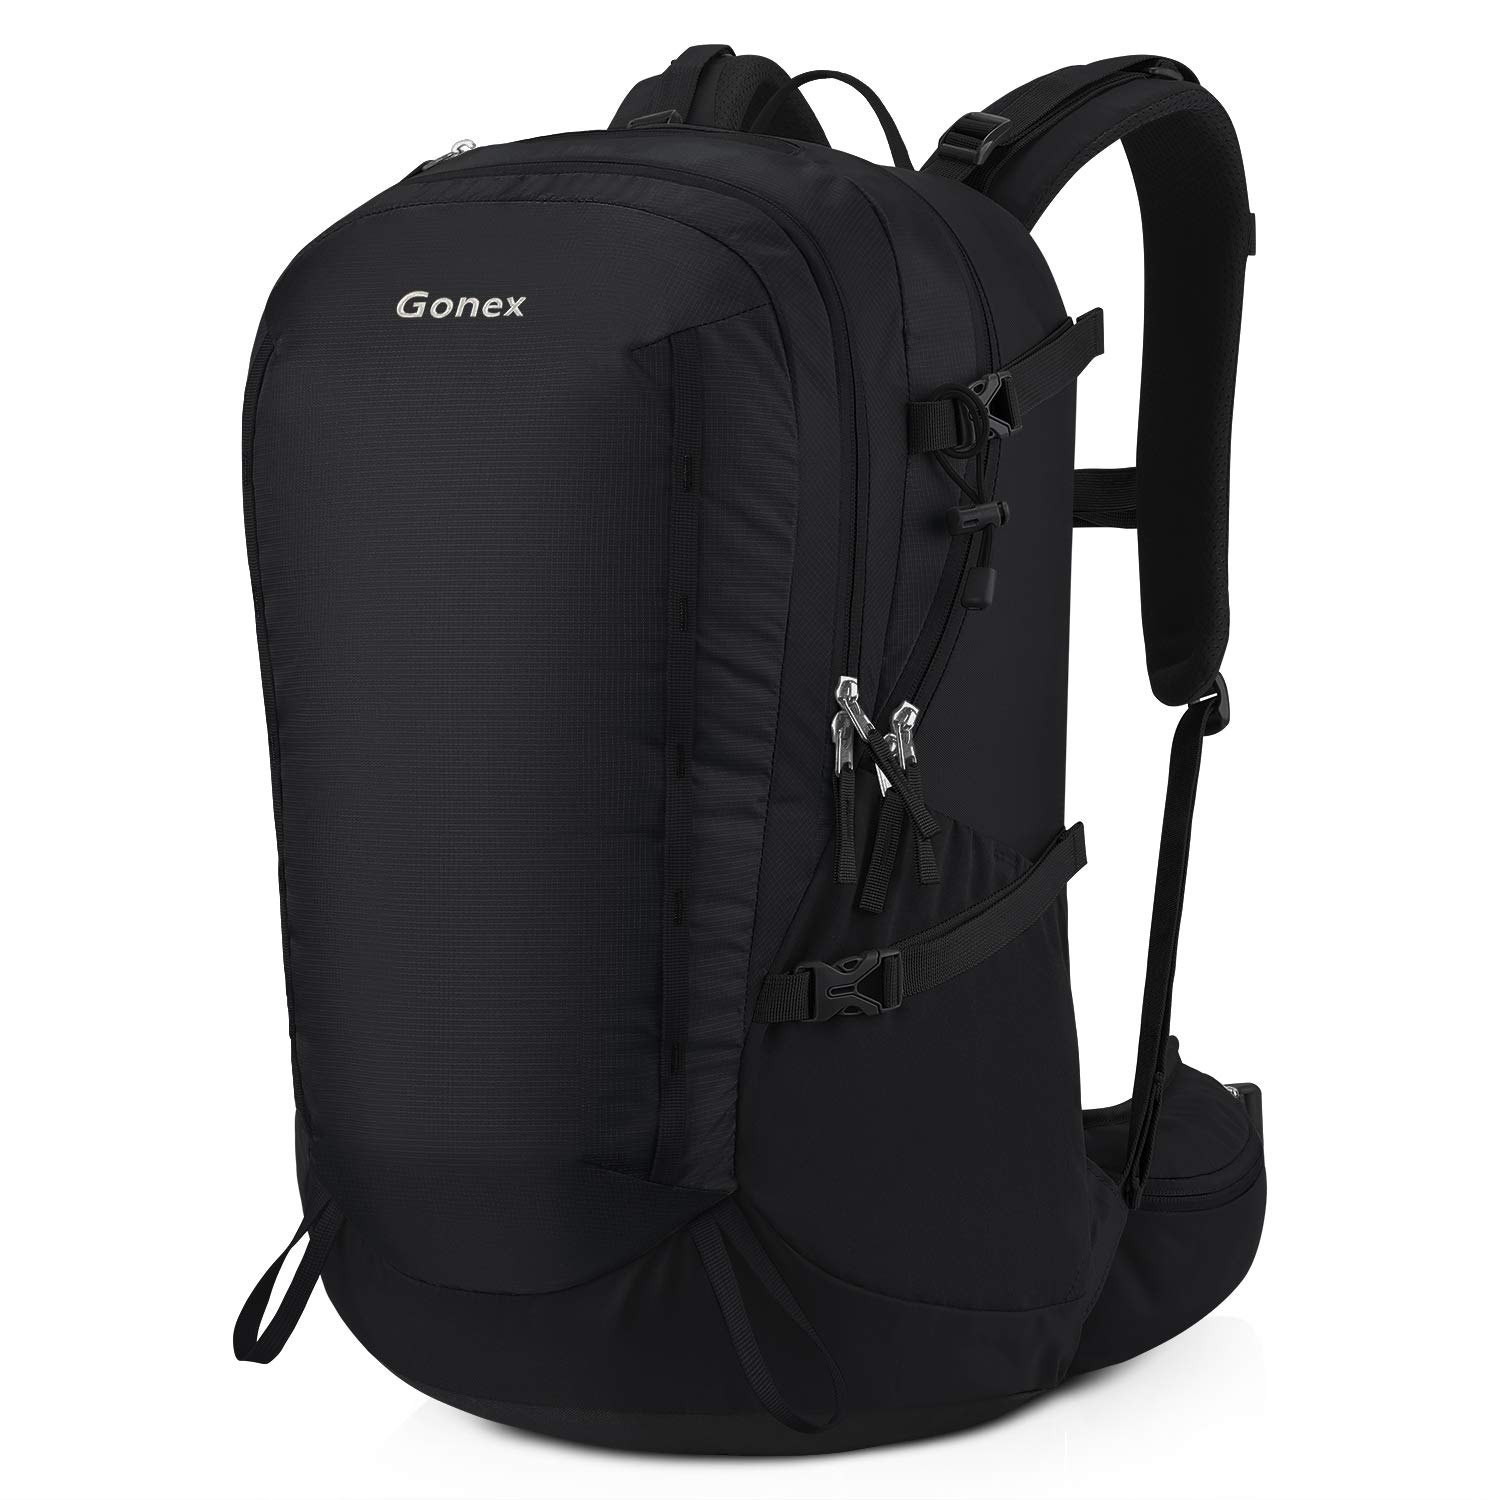 Gonex 40L Hiking Backpack, Outdoor Travel Backpack with Rain Cover for Climbing, Camping, Travelling Black